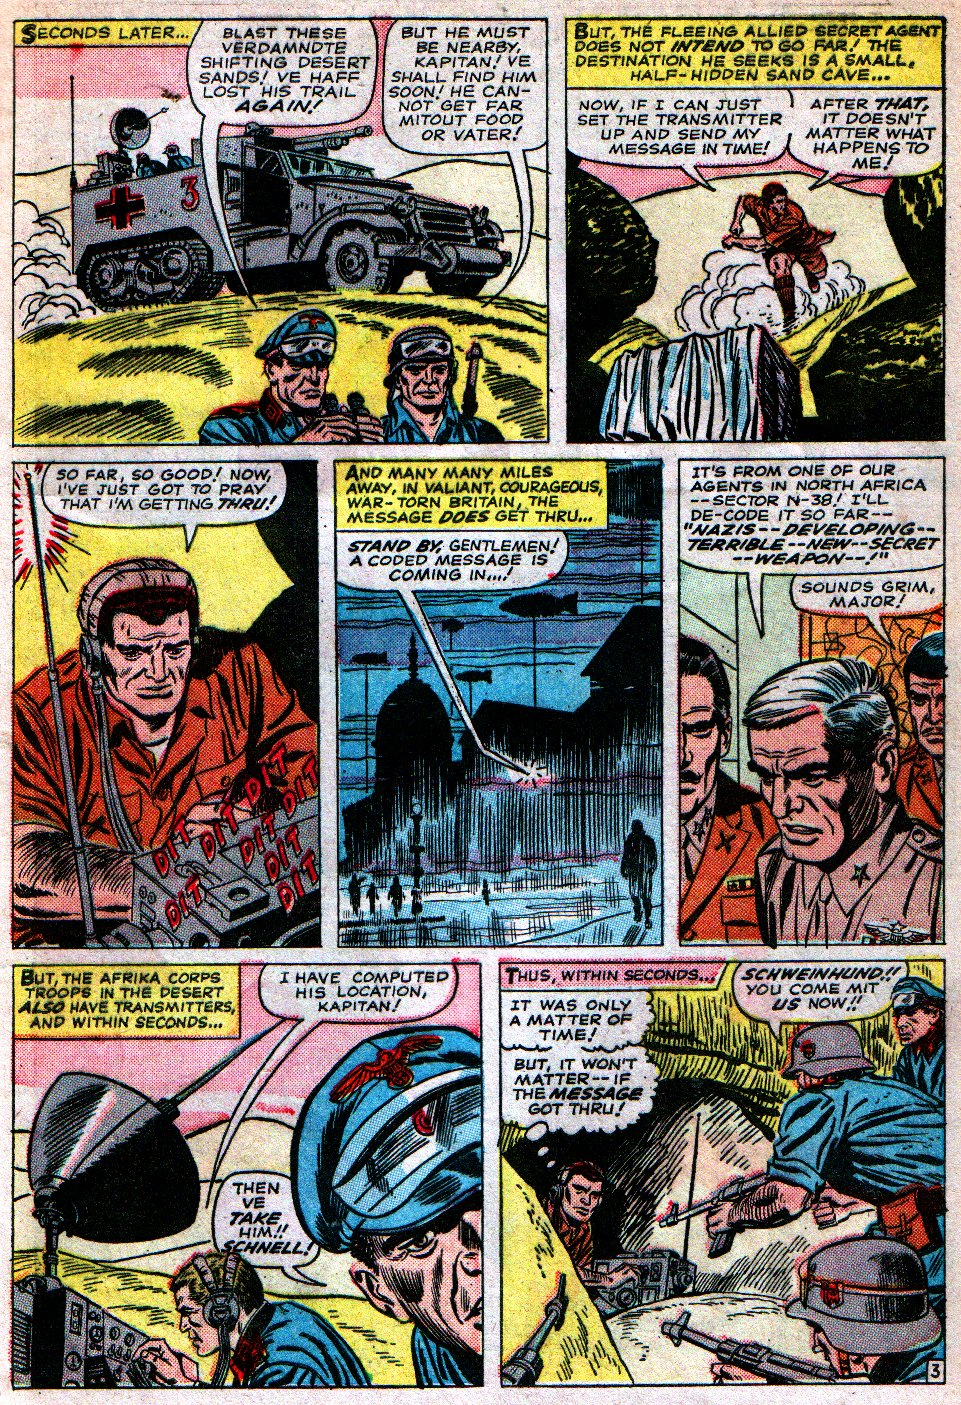 Read online Sgt. Fury comic -  Issue #16 - 5